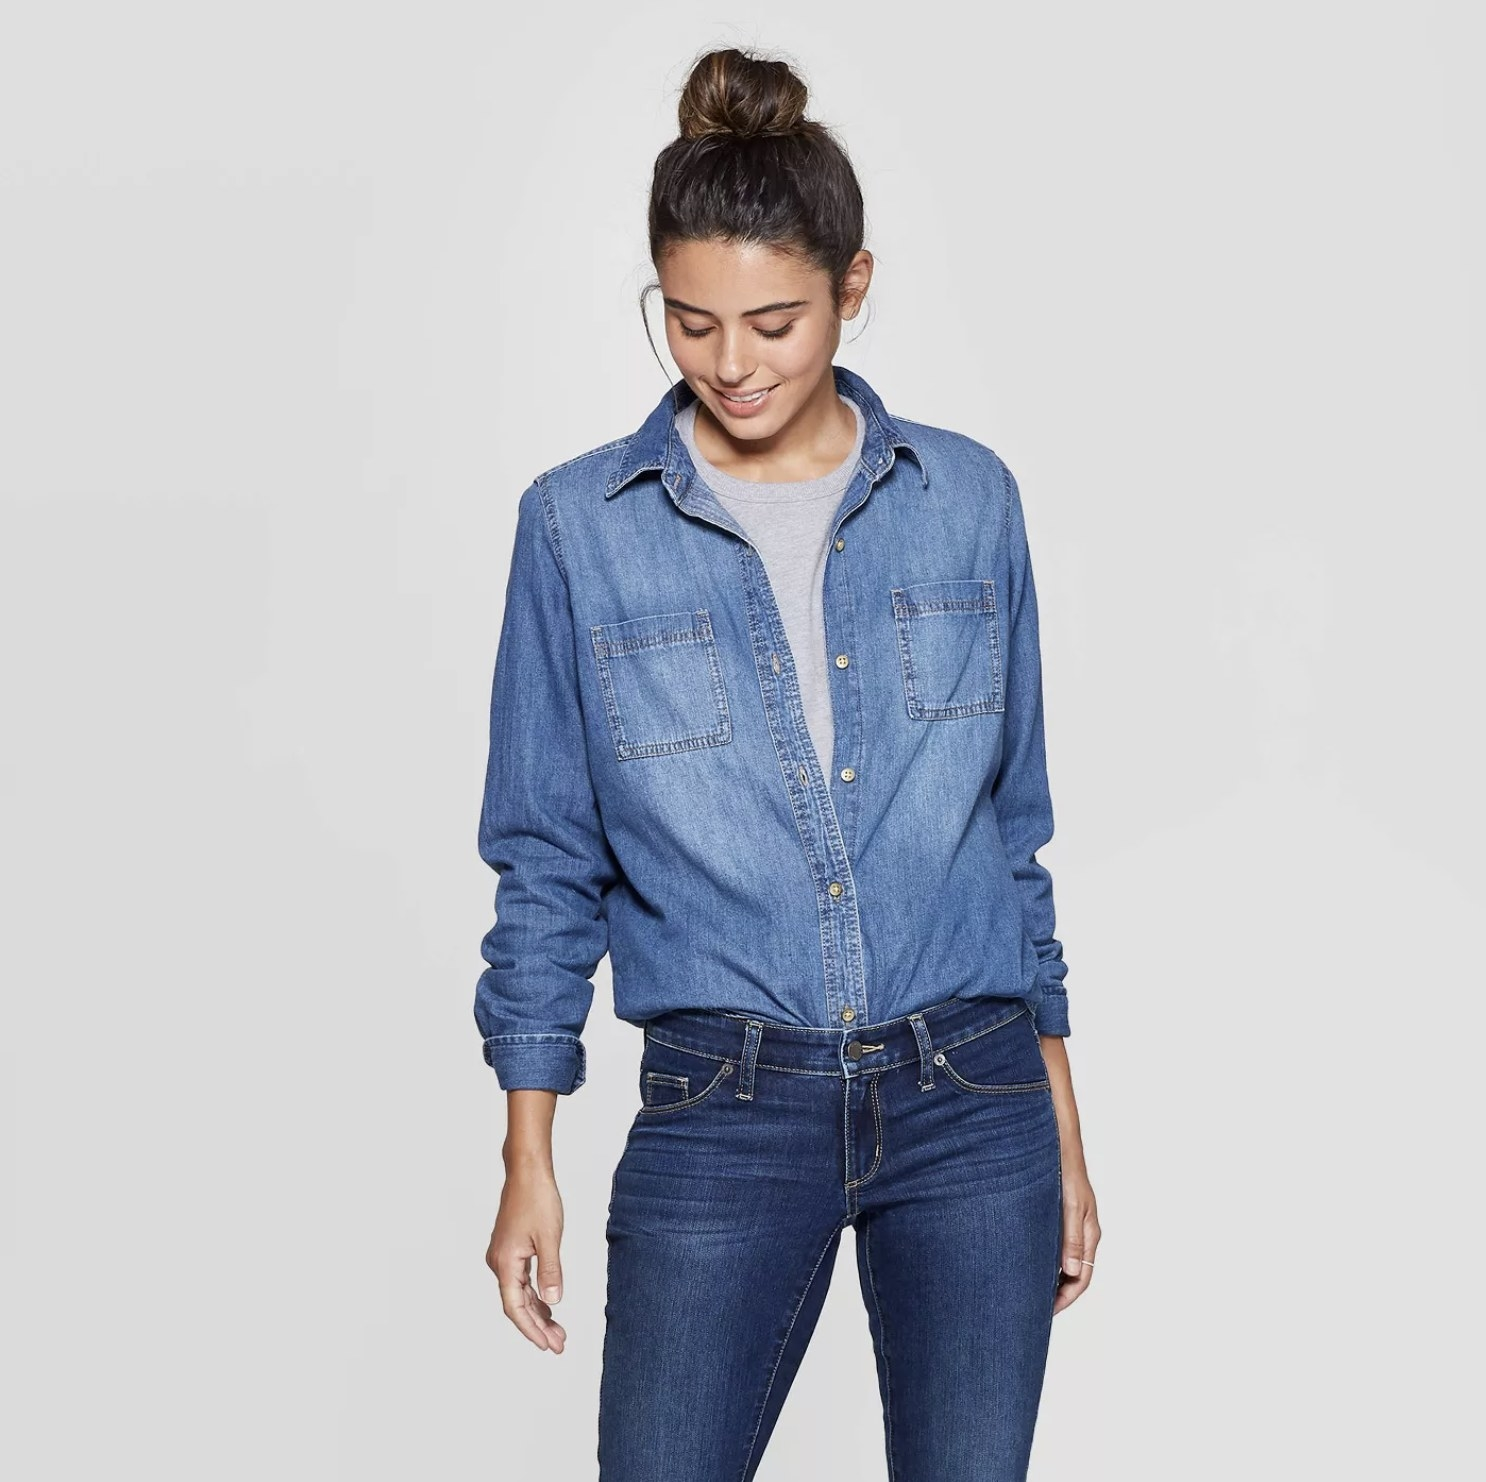 Model is wearing a long sleeve button down denim shirt with a grey shirt underneath and dark blue jeans